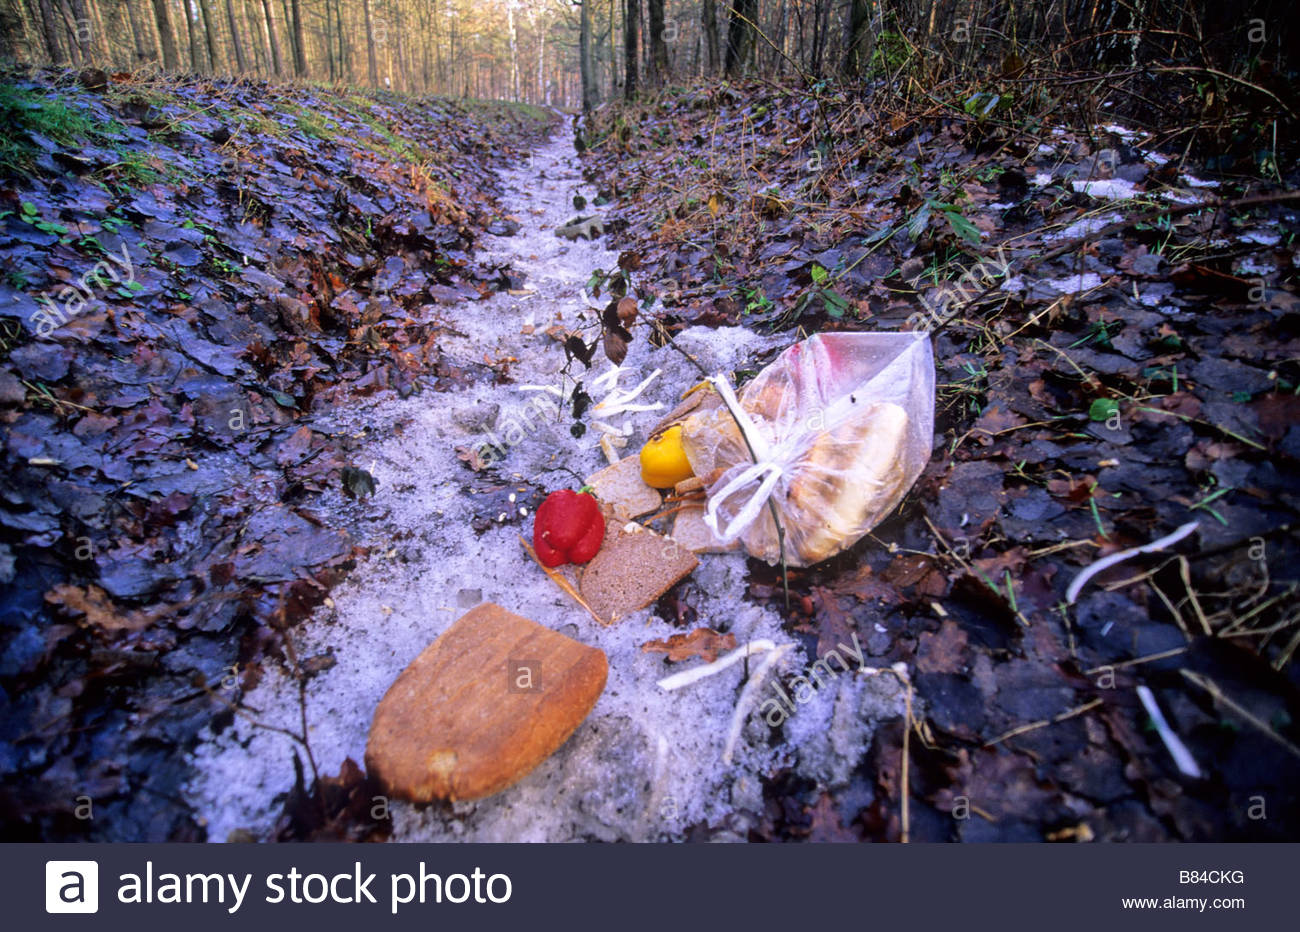 dumped food Germany weggeworfene Lebensmittel - Stock Image